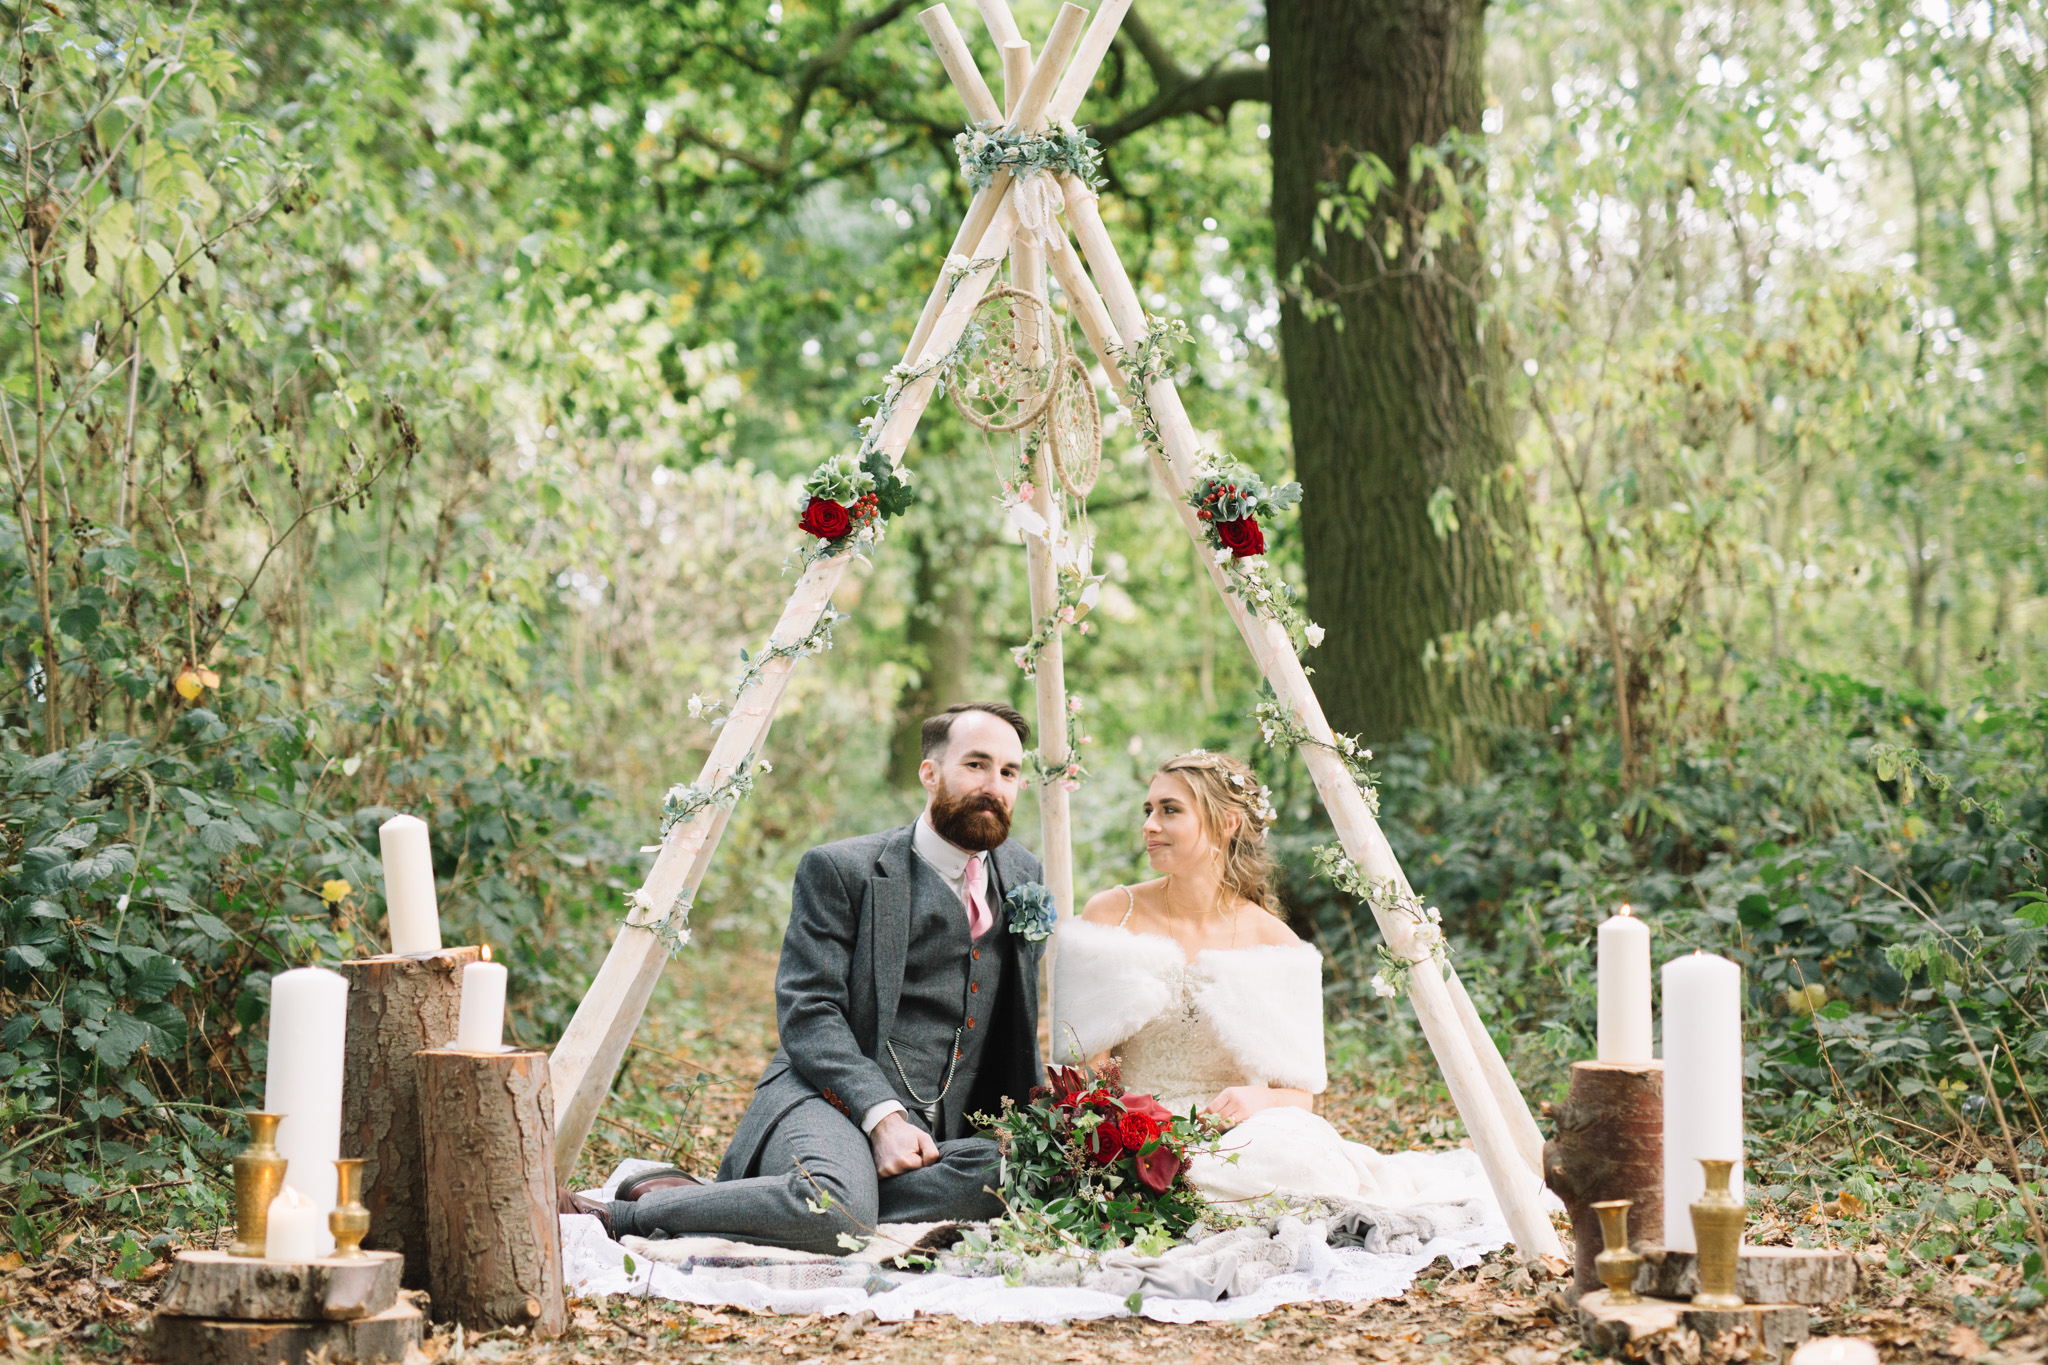 A Woodland Wonderland Wedding Journey at Kimbleton Castle